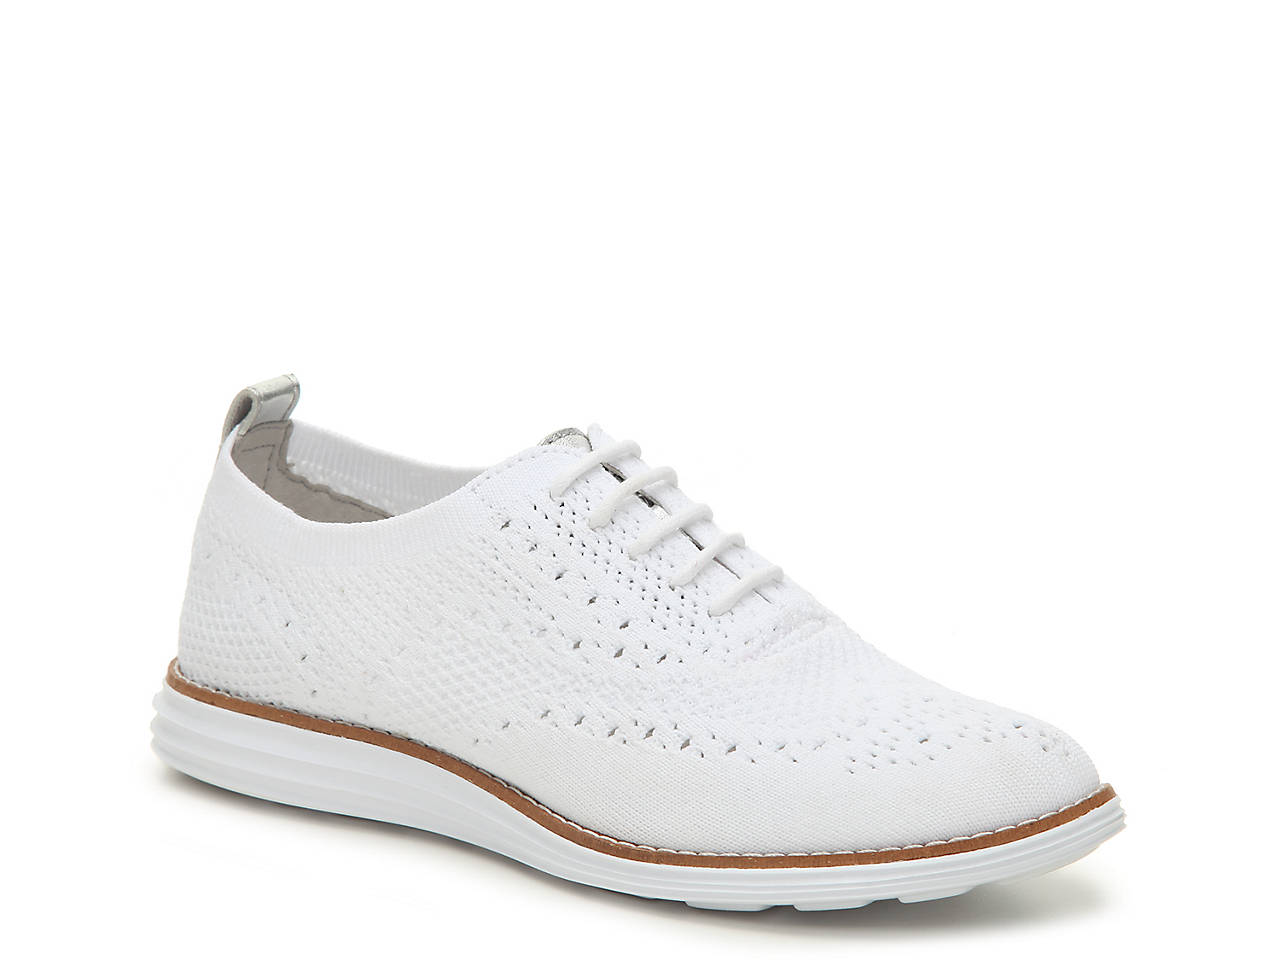 Knit Og Grand Wingtip Oxford